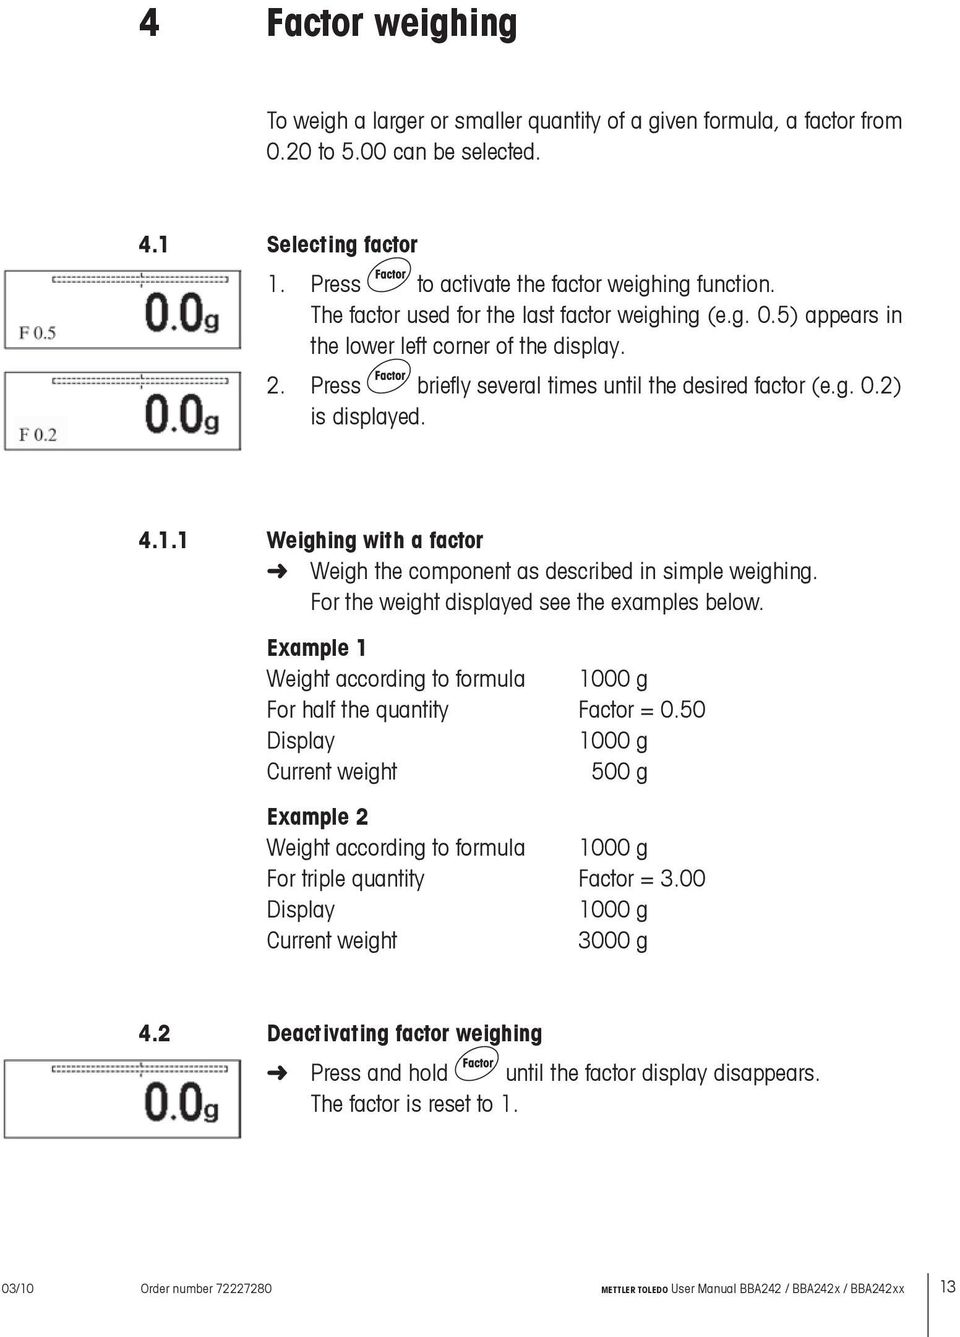 1 Weighing with a factor Weigh the component as described in simple weighing. For the weight displayed see the examples below.